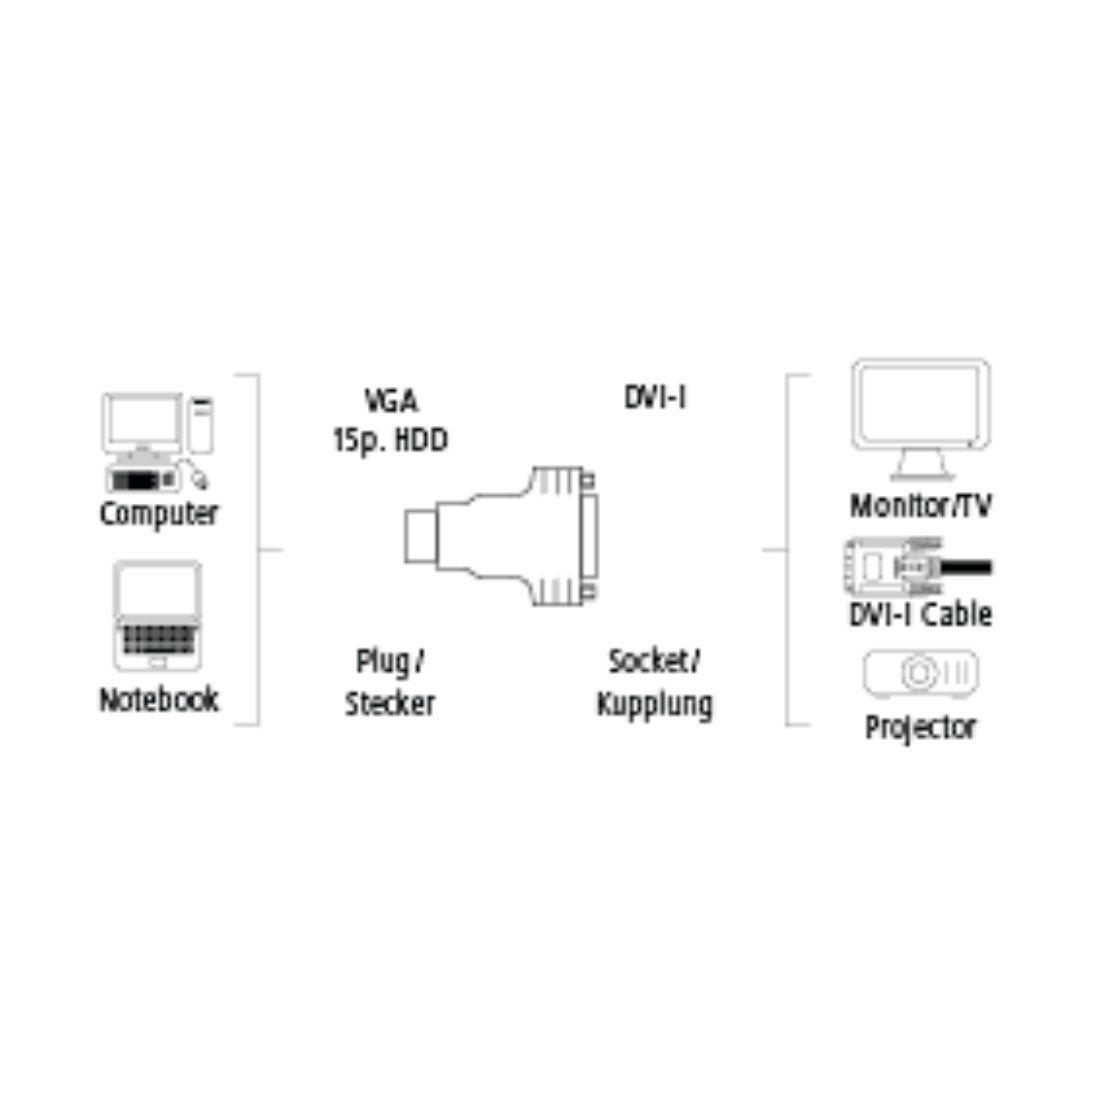 Hama Analogue Vga Dvi Adapter Computers Accessories Tv To Schematic